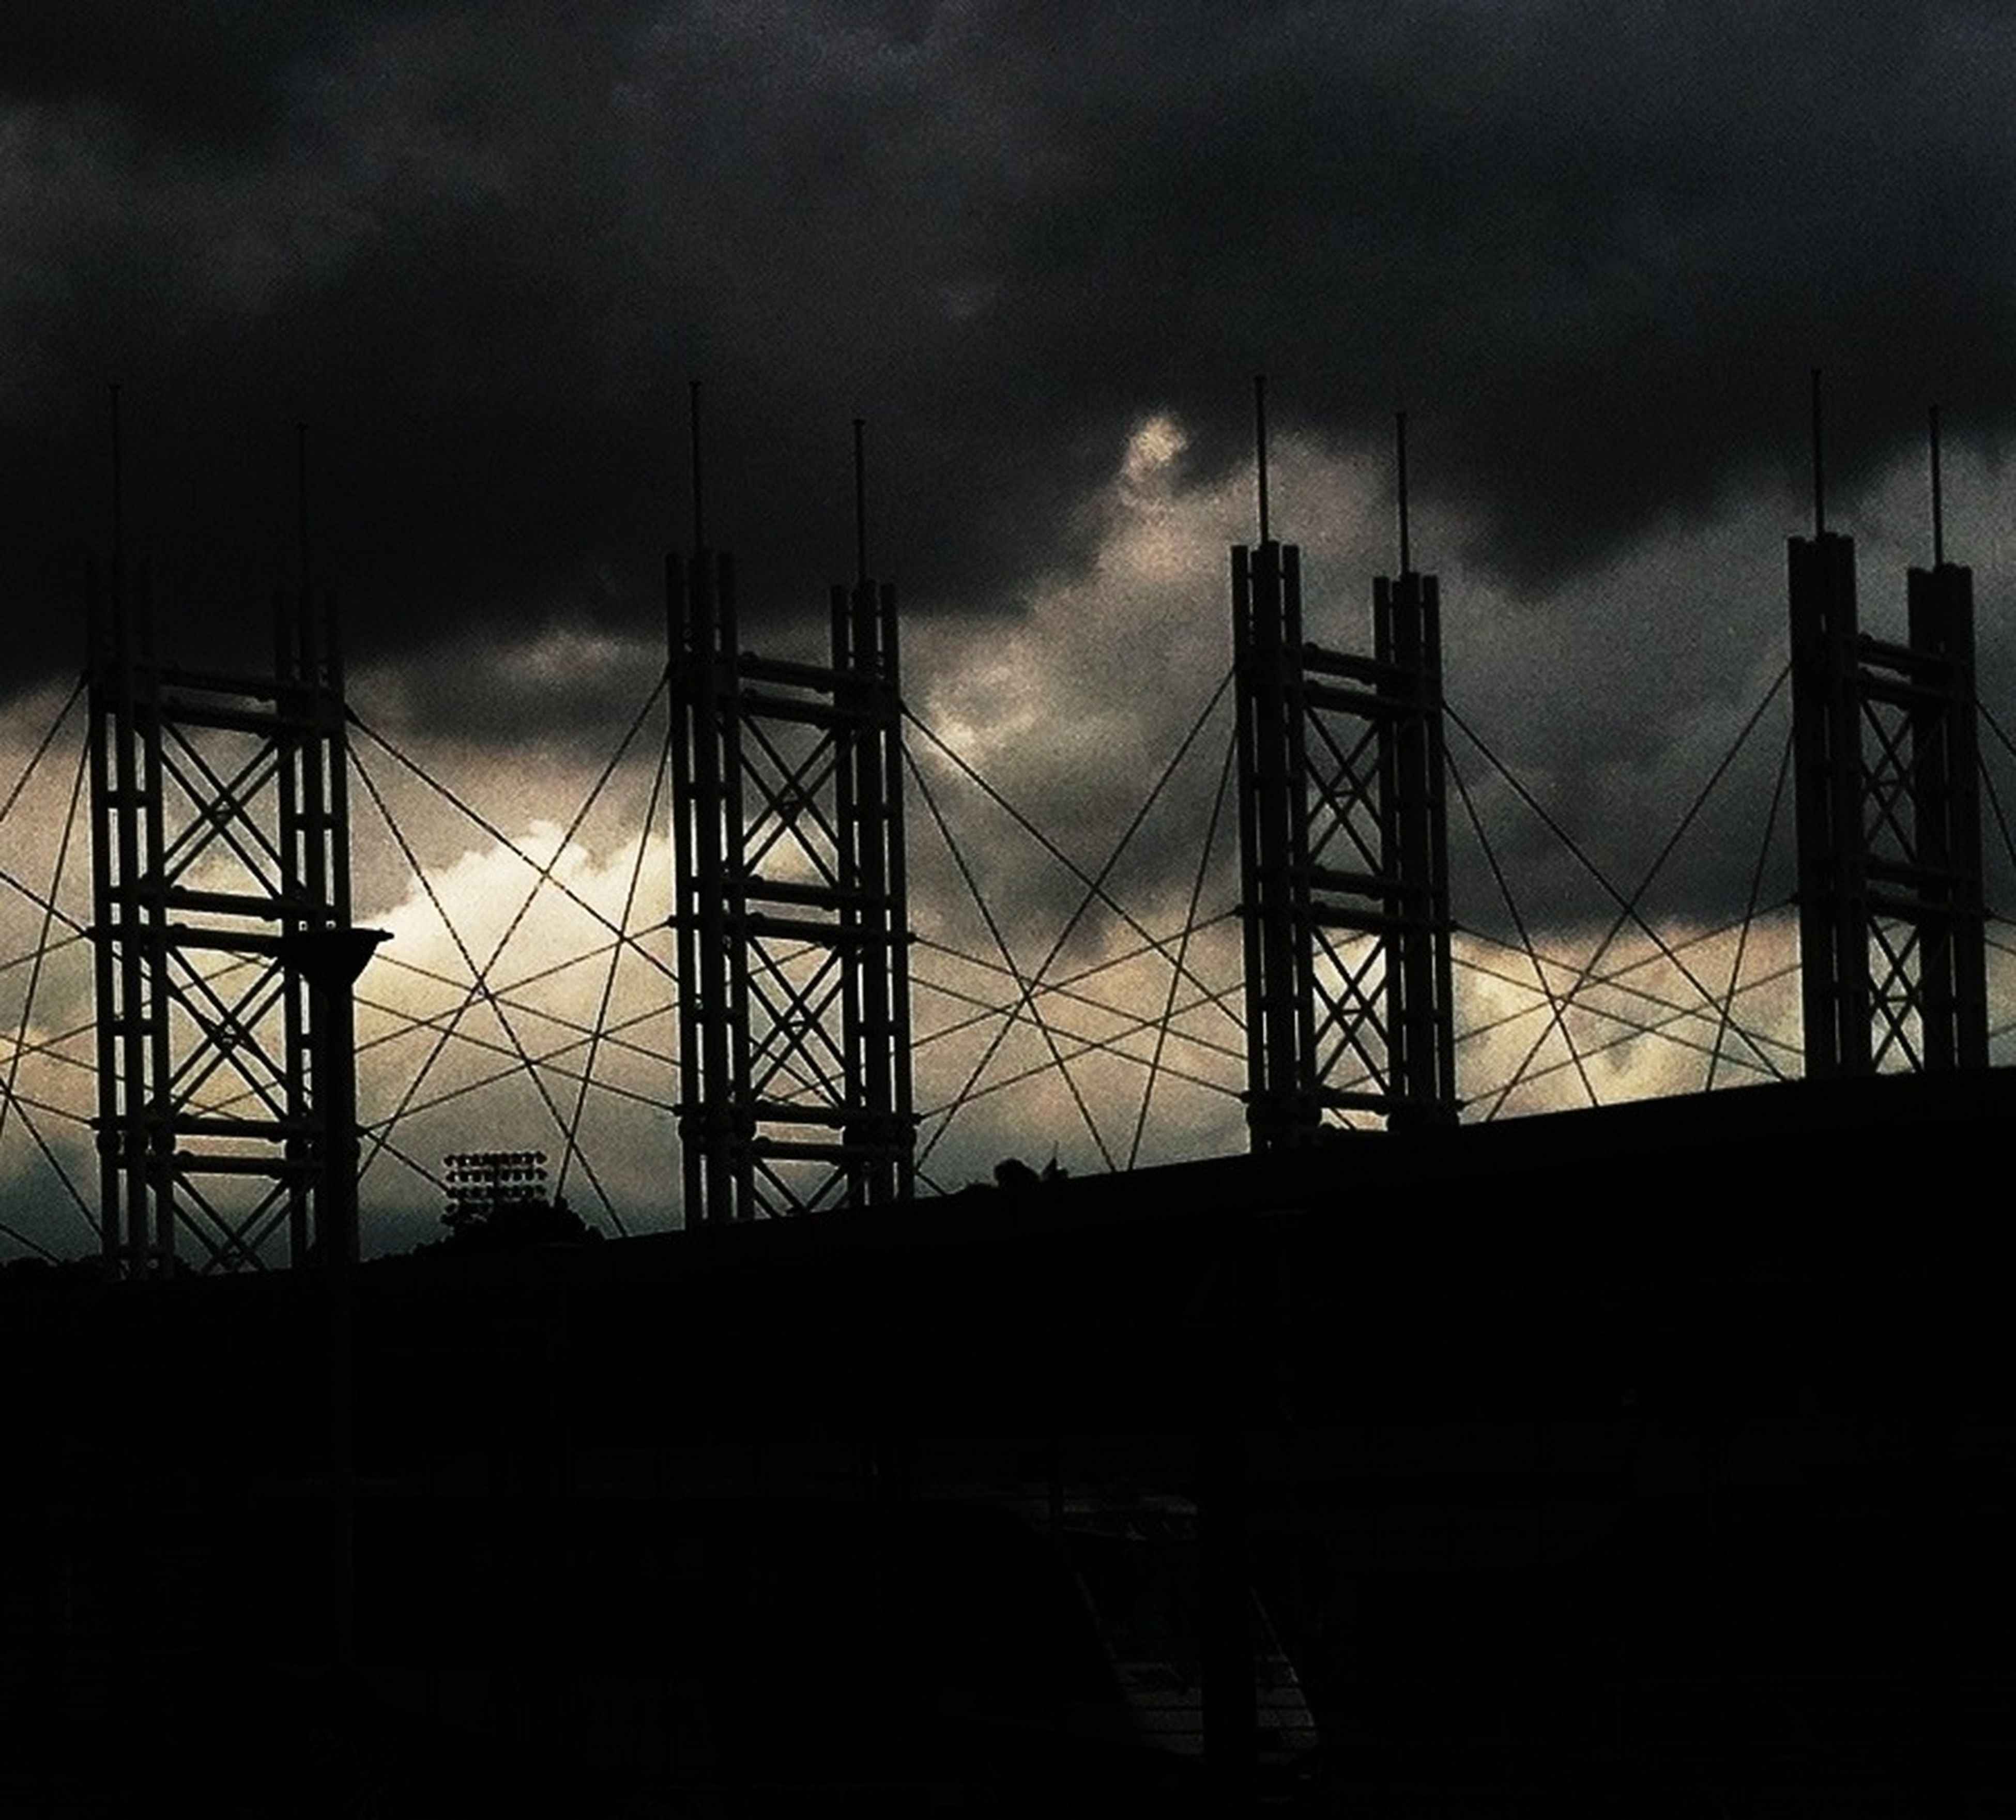 sky, cloud - sky, silhouette, cloudy, built structure, architecture, low angle view, dusk, connection, transportation, cloud, weather, sunset, overcast, outdoors, no people, metal, dark, building exterior, electricity pylon